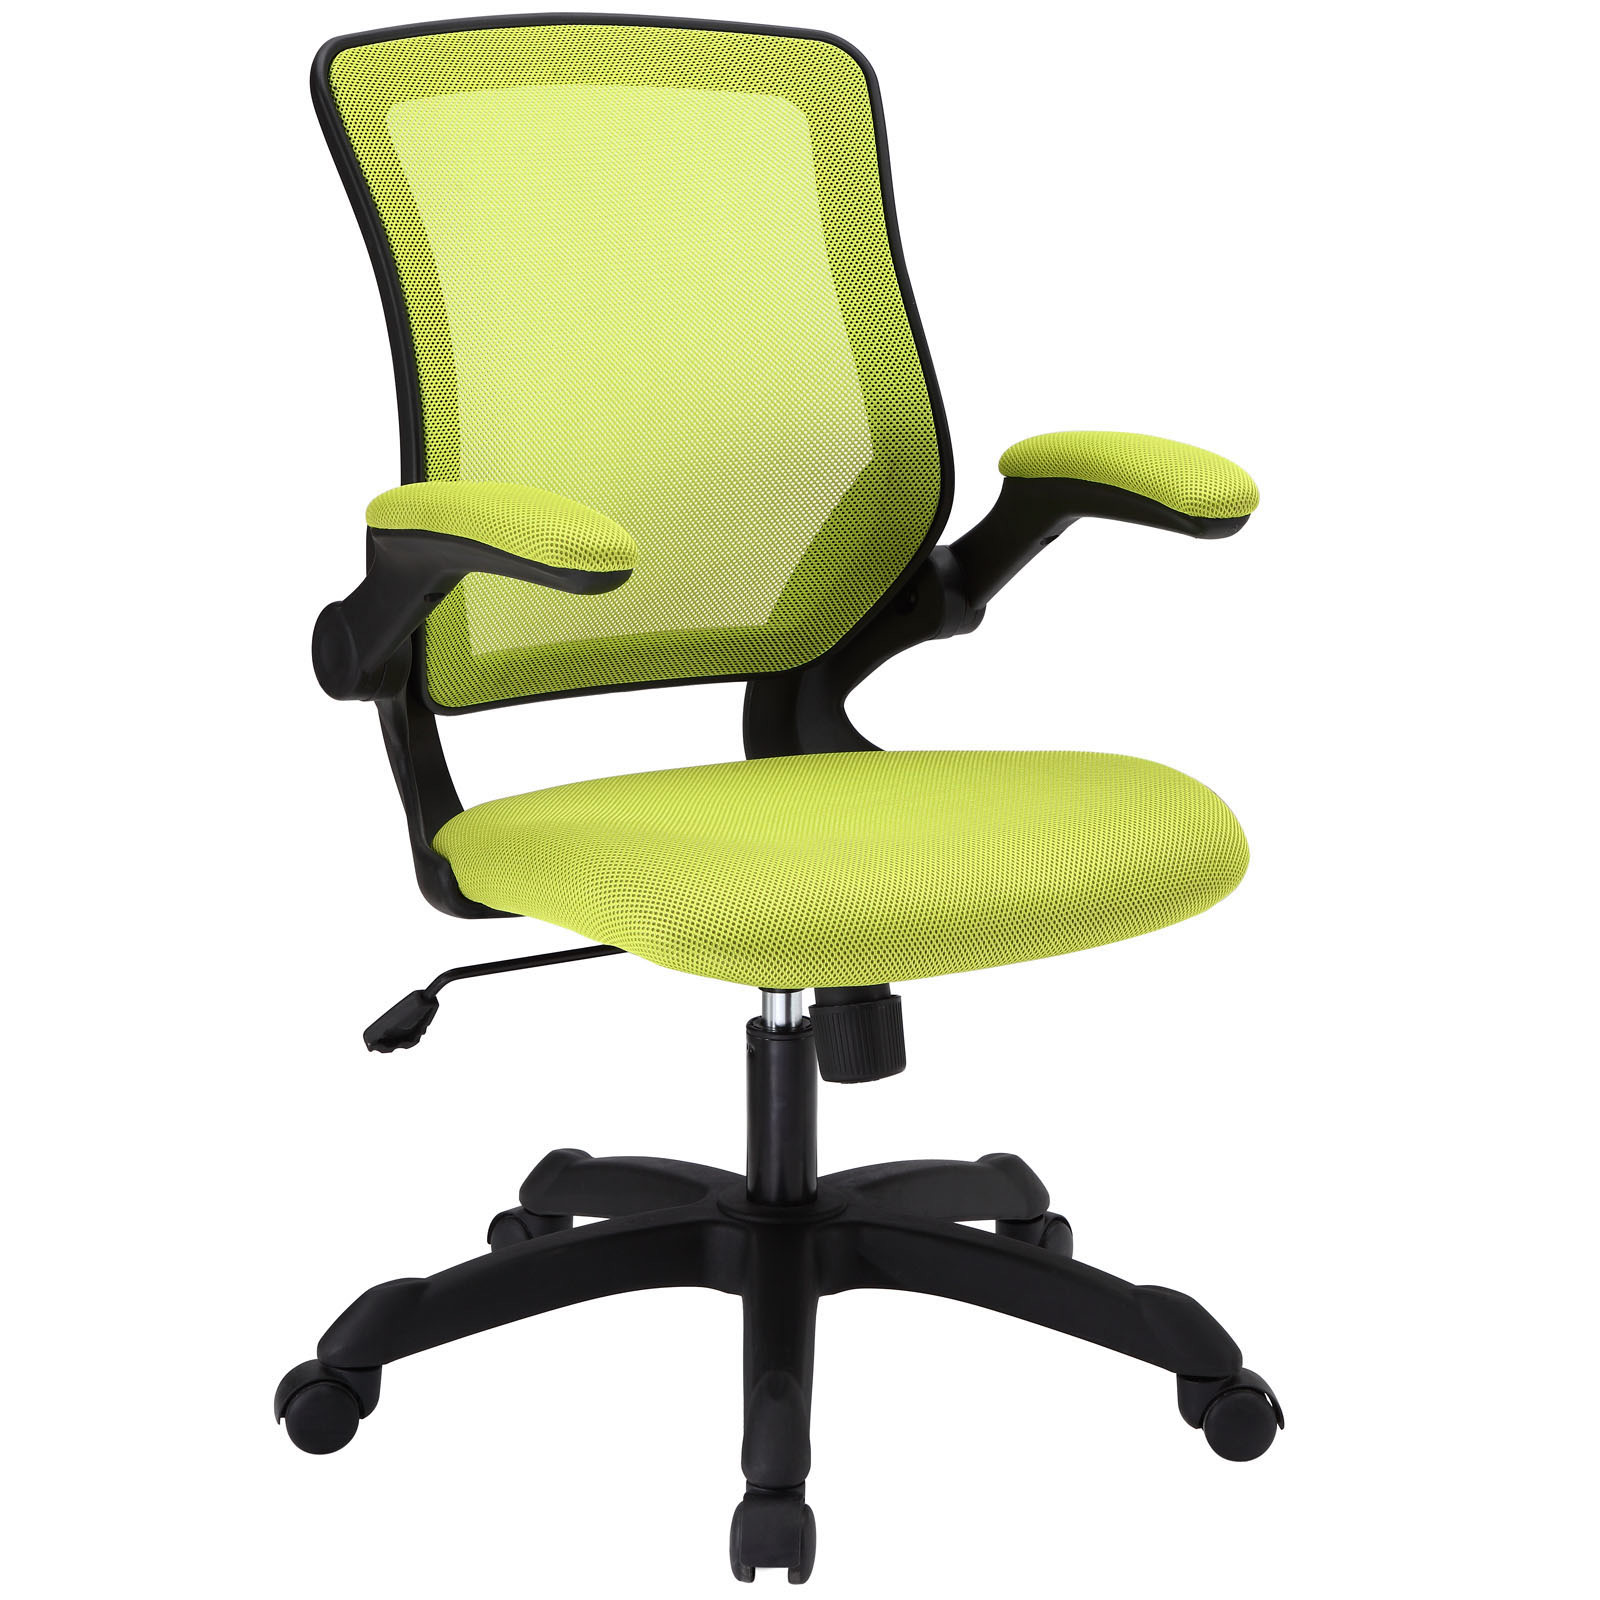 fice Chair Deals Discount Chairs fice Furniture Chairs